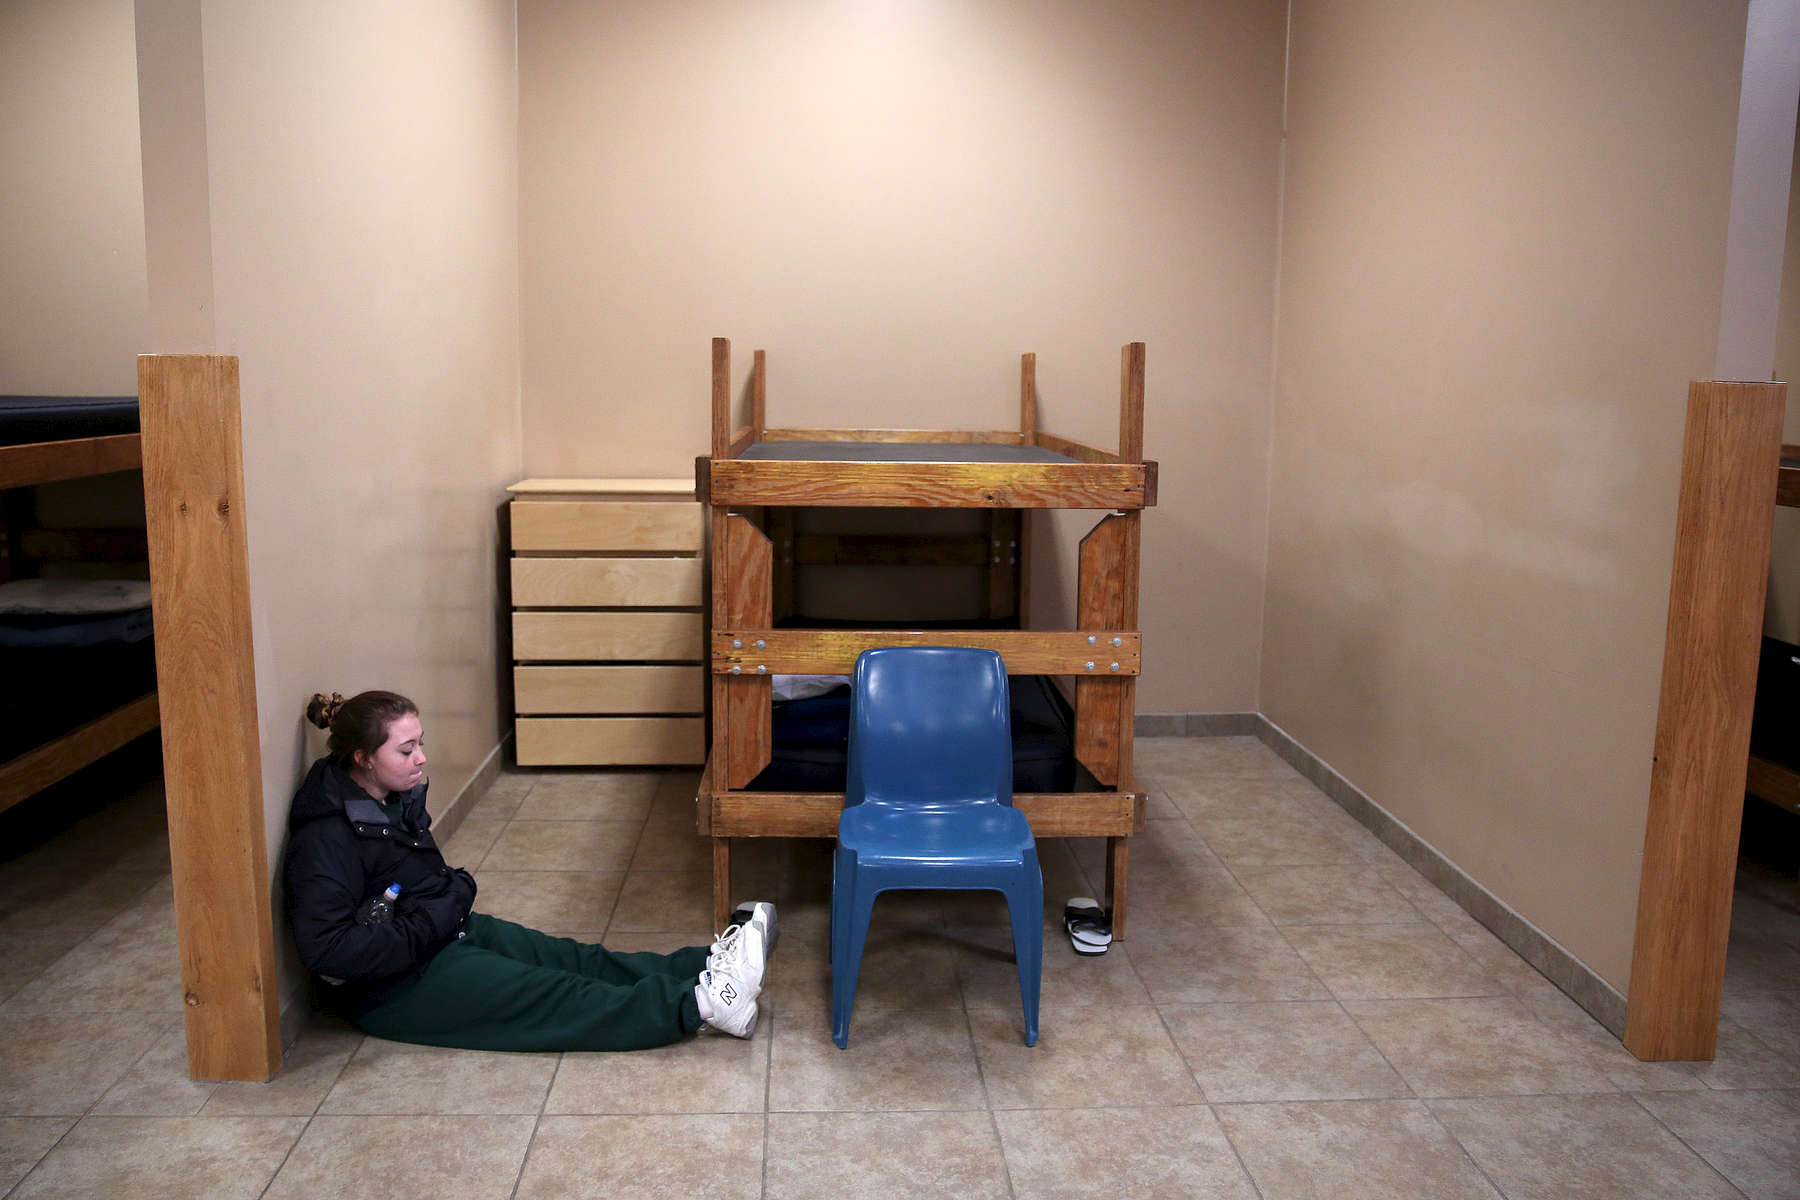 Desiree, 15, a resident at the Pioneer Work & Learn Center operated by Wolverine Human Services sat on the floor near her bed as she waited to be called for lunch in Vassar, Mich.